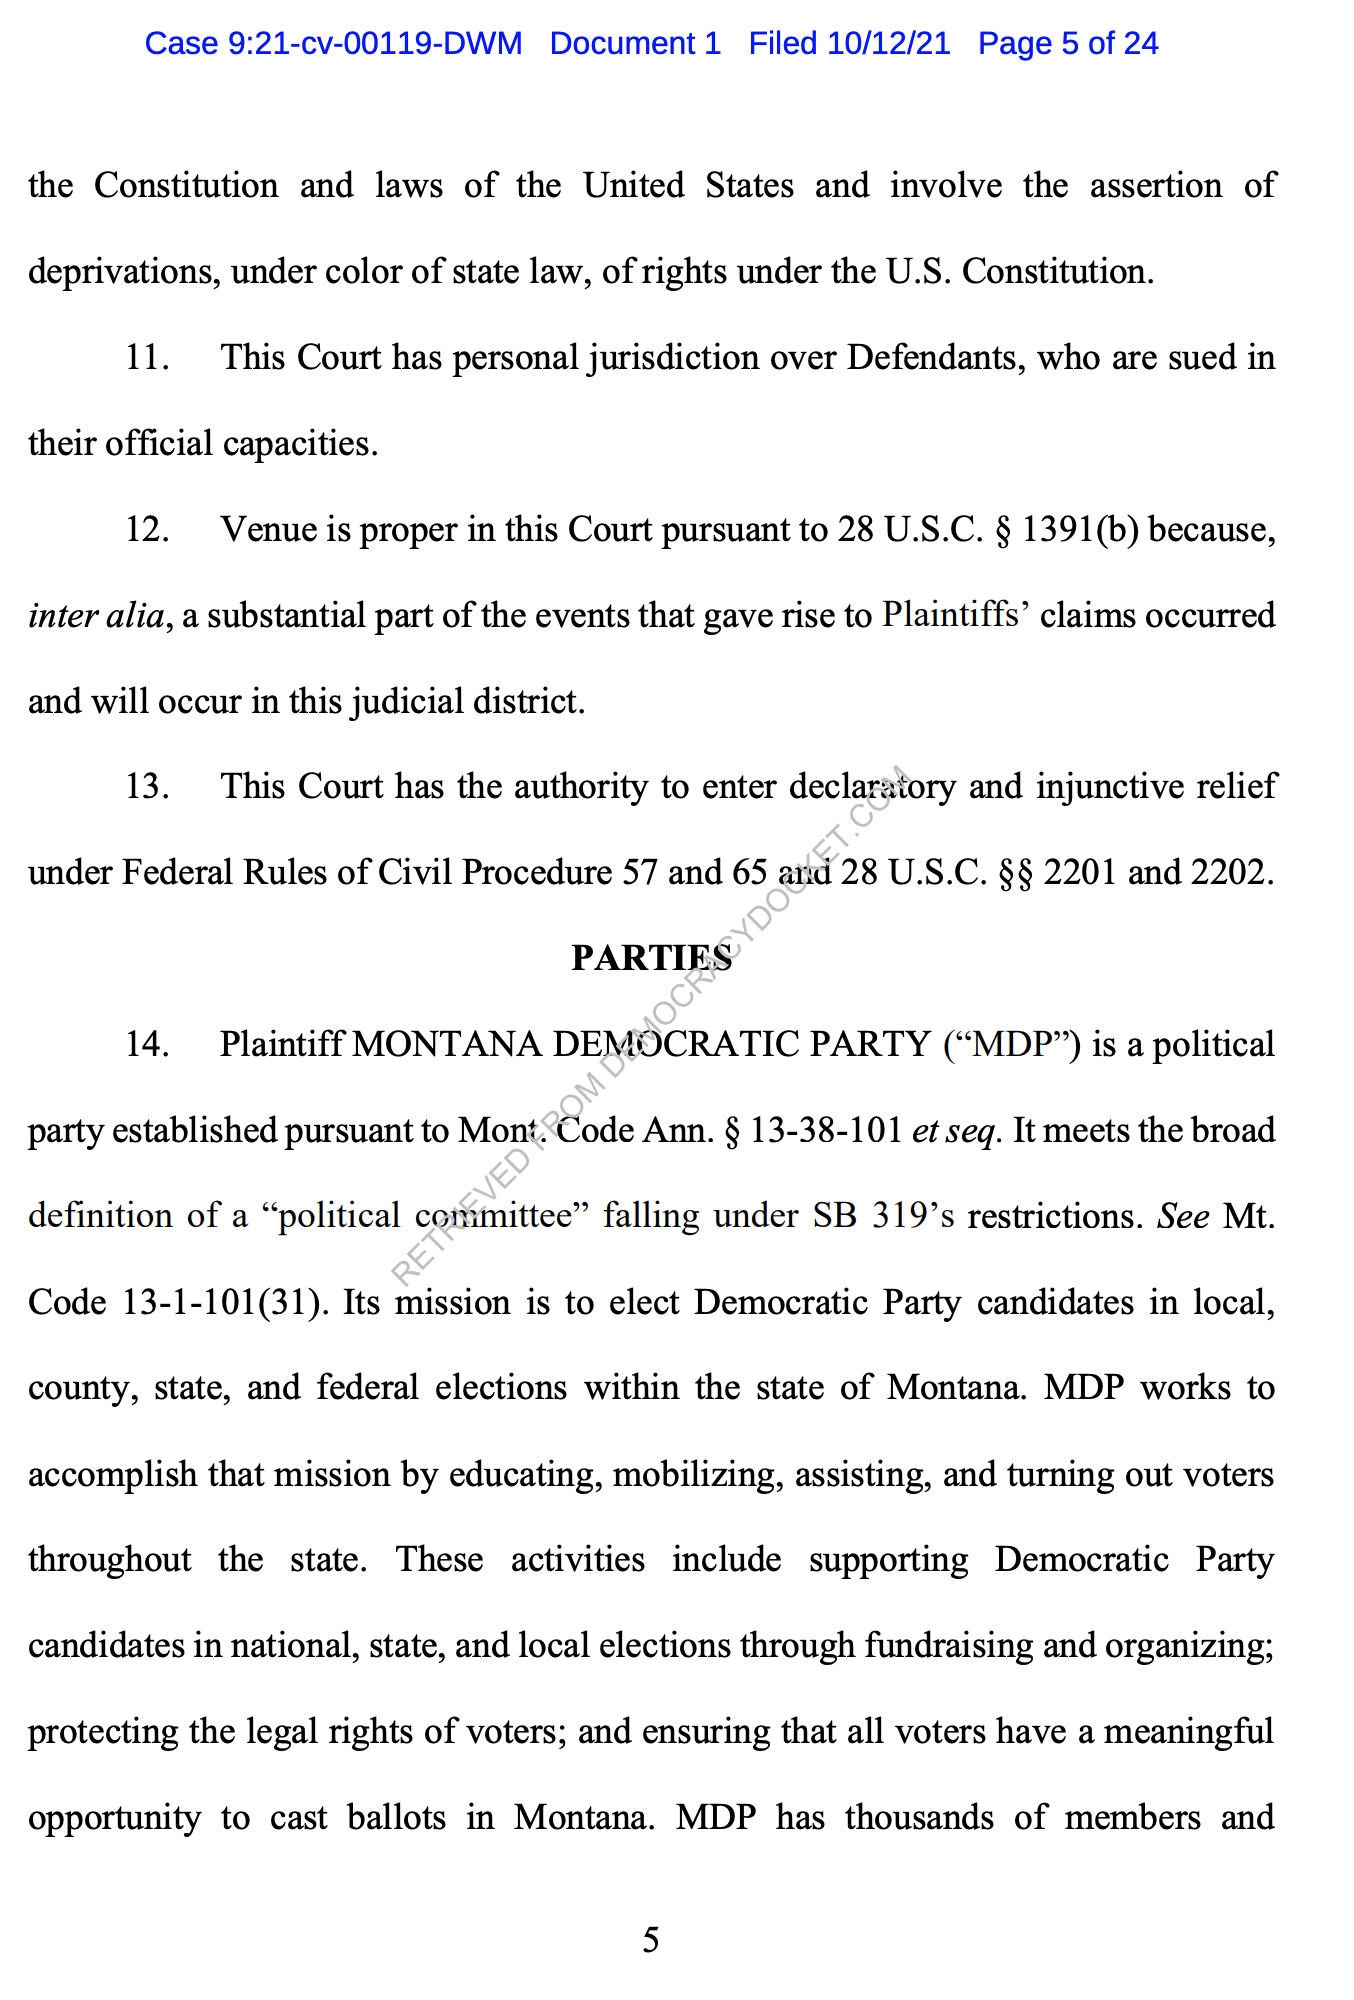 Screen-Shot-2021-10-12-at-10.25.07-AM Federal Legal Action To Stop Montana GOP Voter Suppression Announced Civil Rights Corruption Featured Politics Top Stories